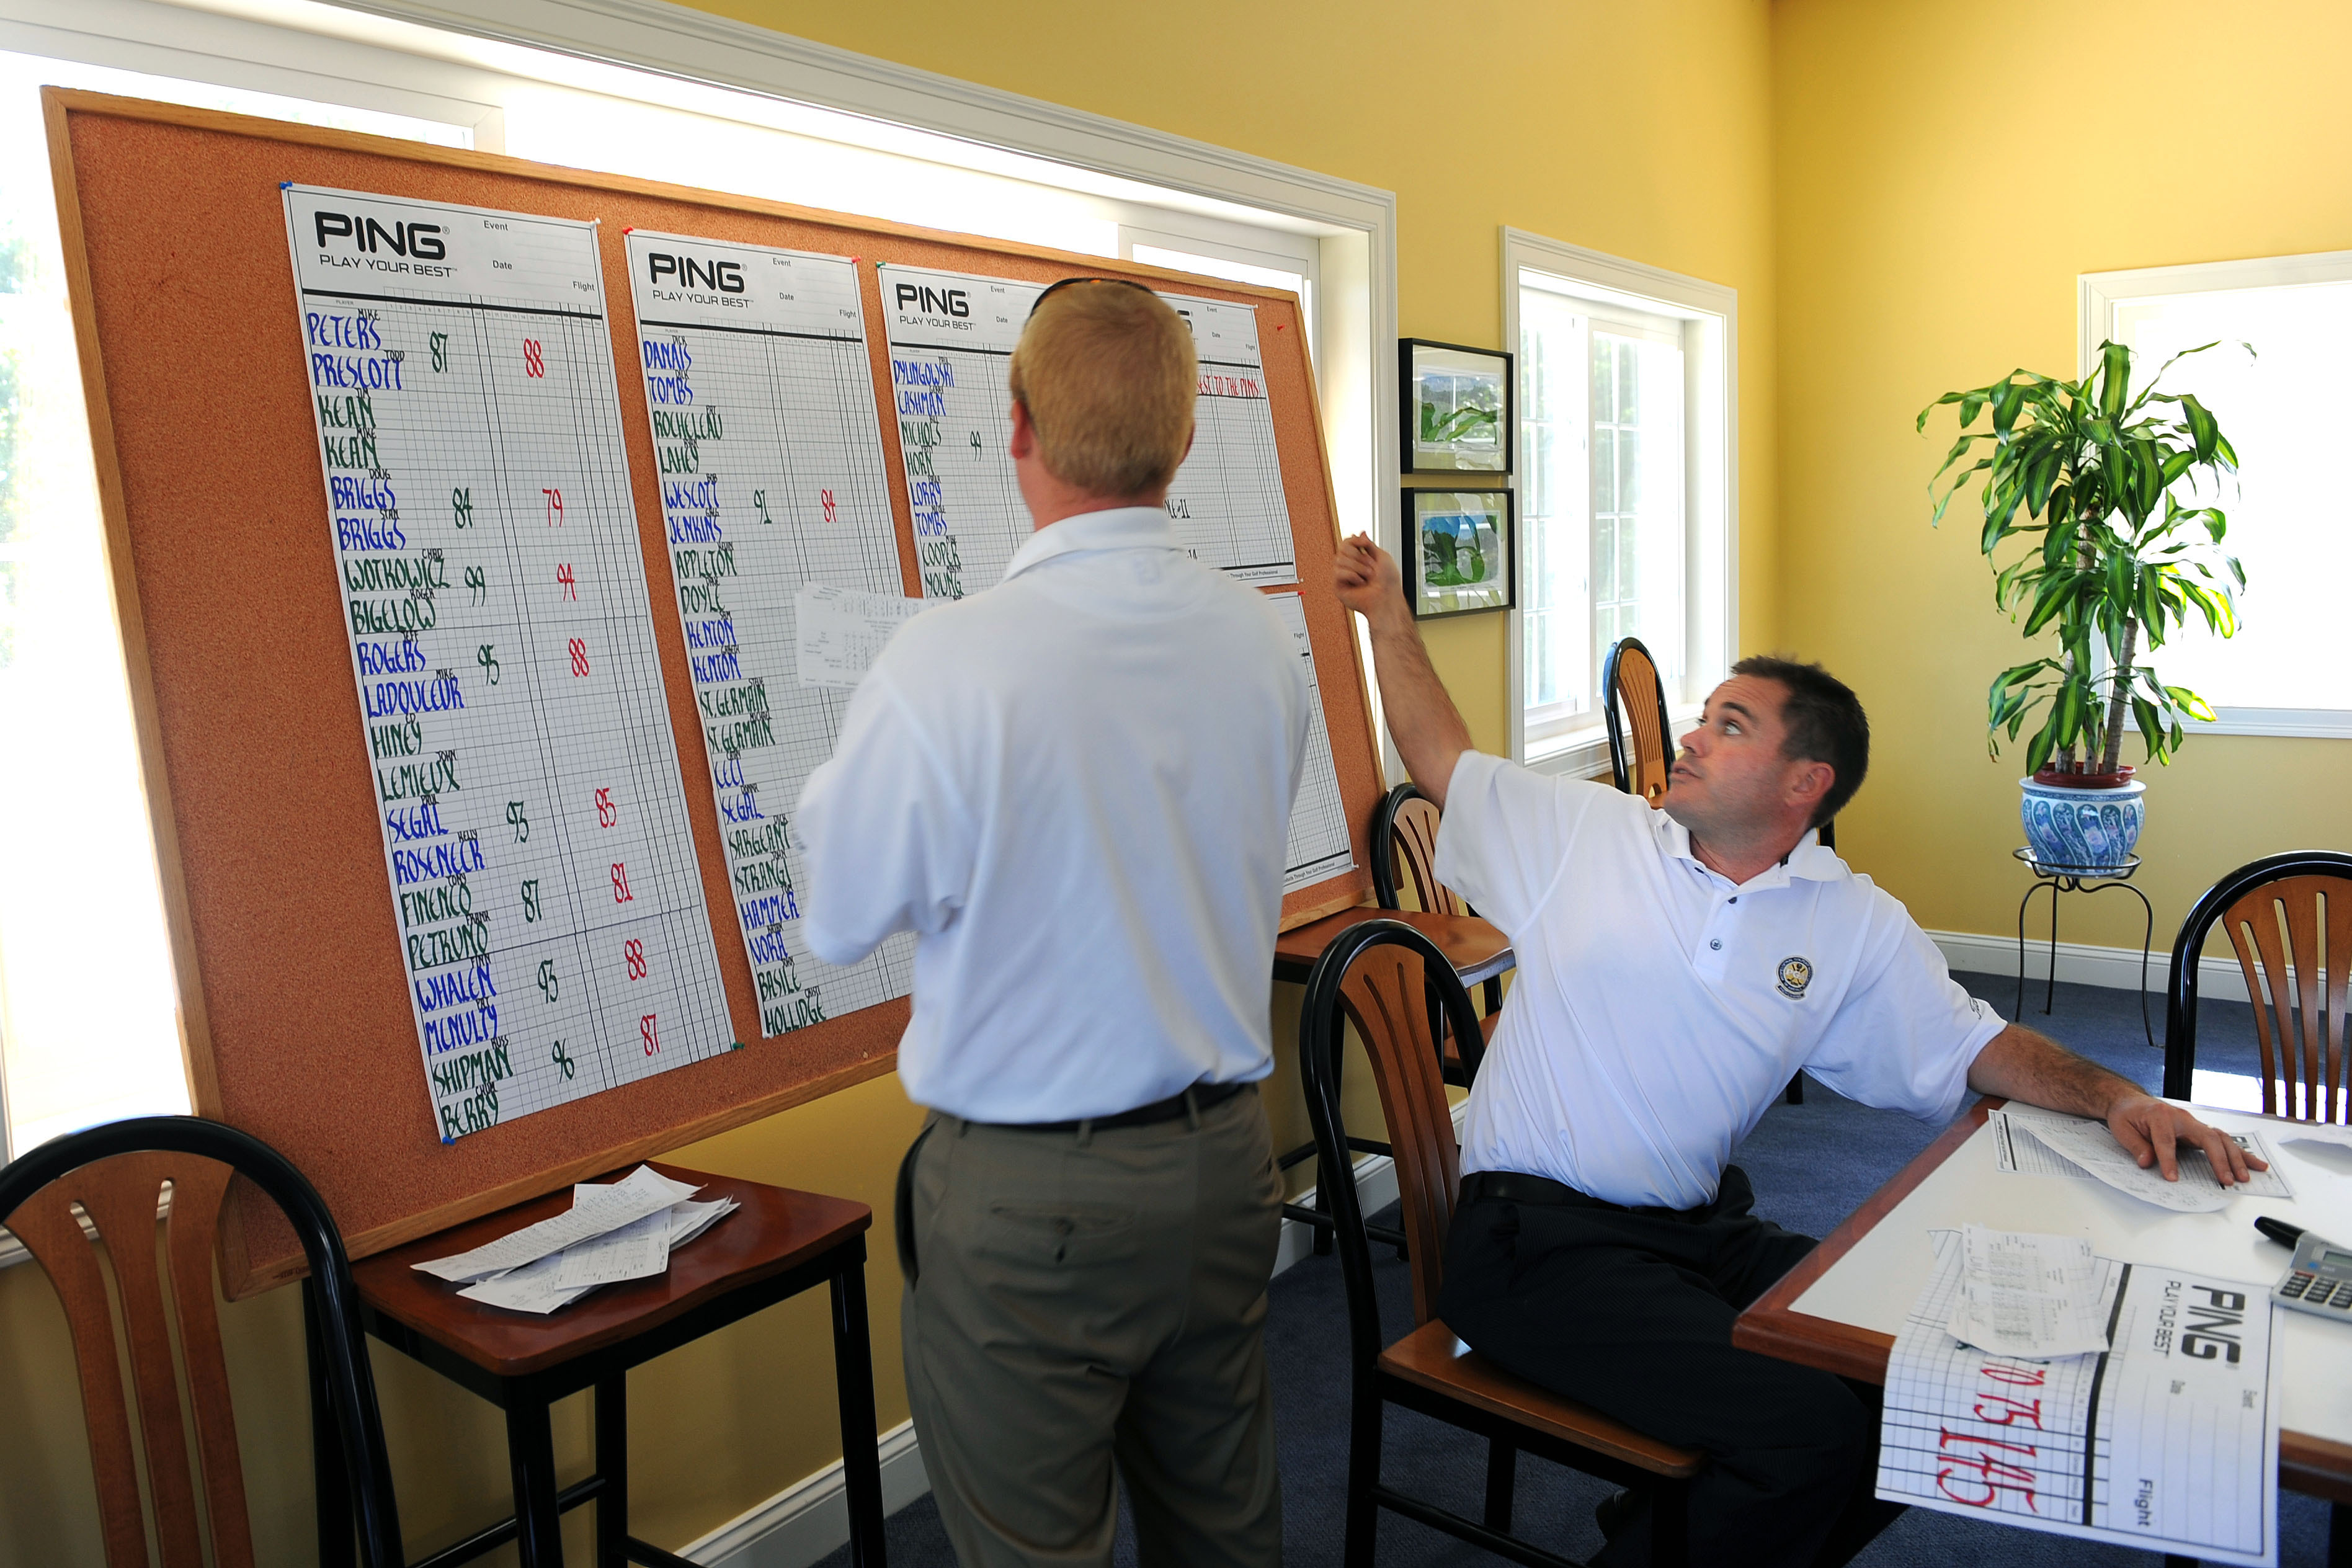 Golf Pro Matt Blasik, right, helped Dan Limauro post results of a tournament at the York, Maine, course.